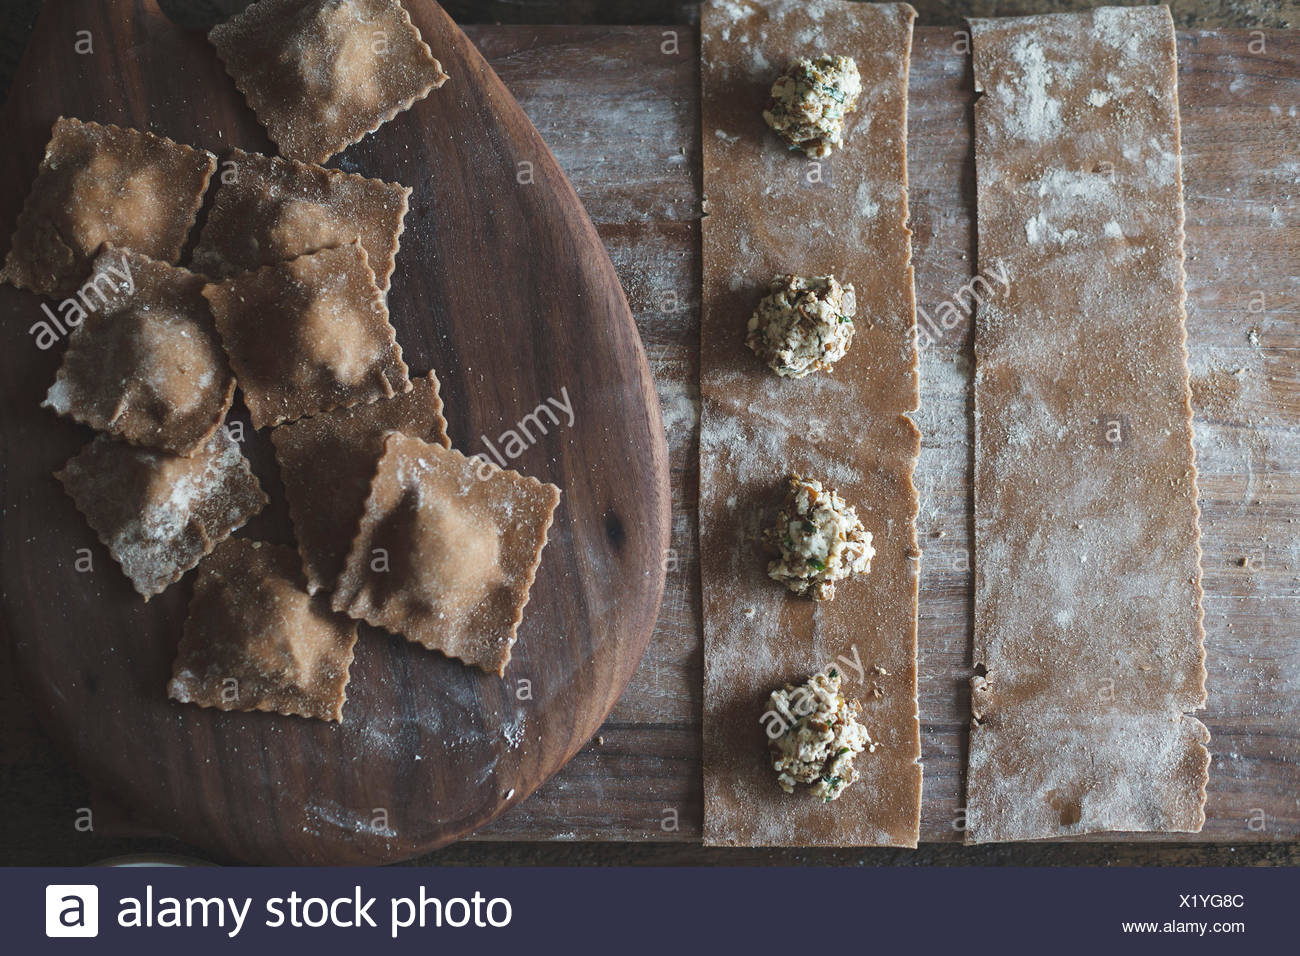 The cooking of chestnut flour ravioli with artichokes, peas and enoki mushrooms. - Stock Image